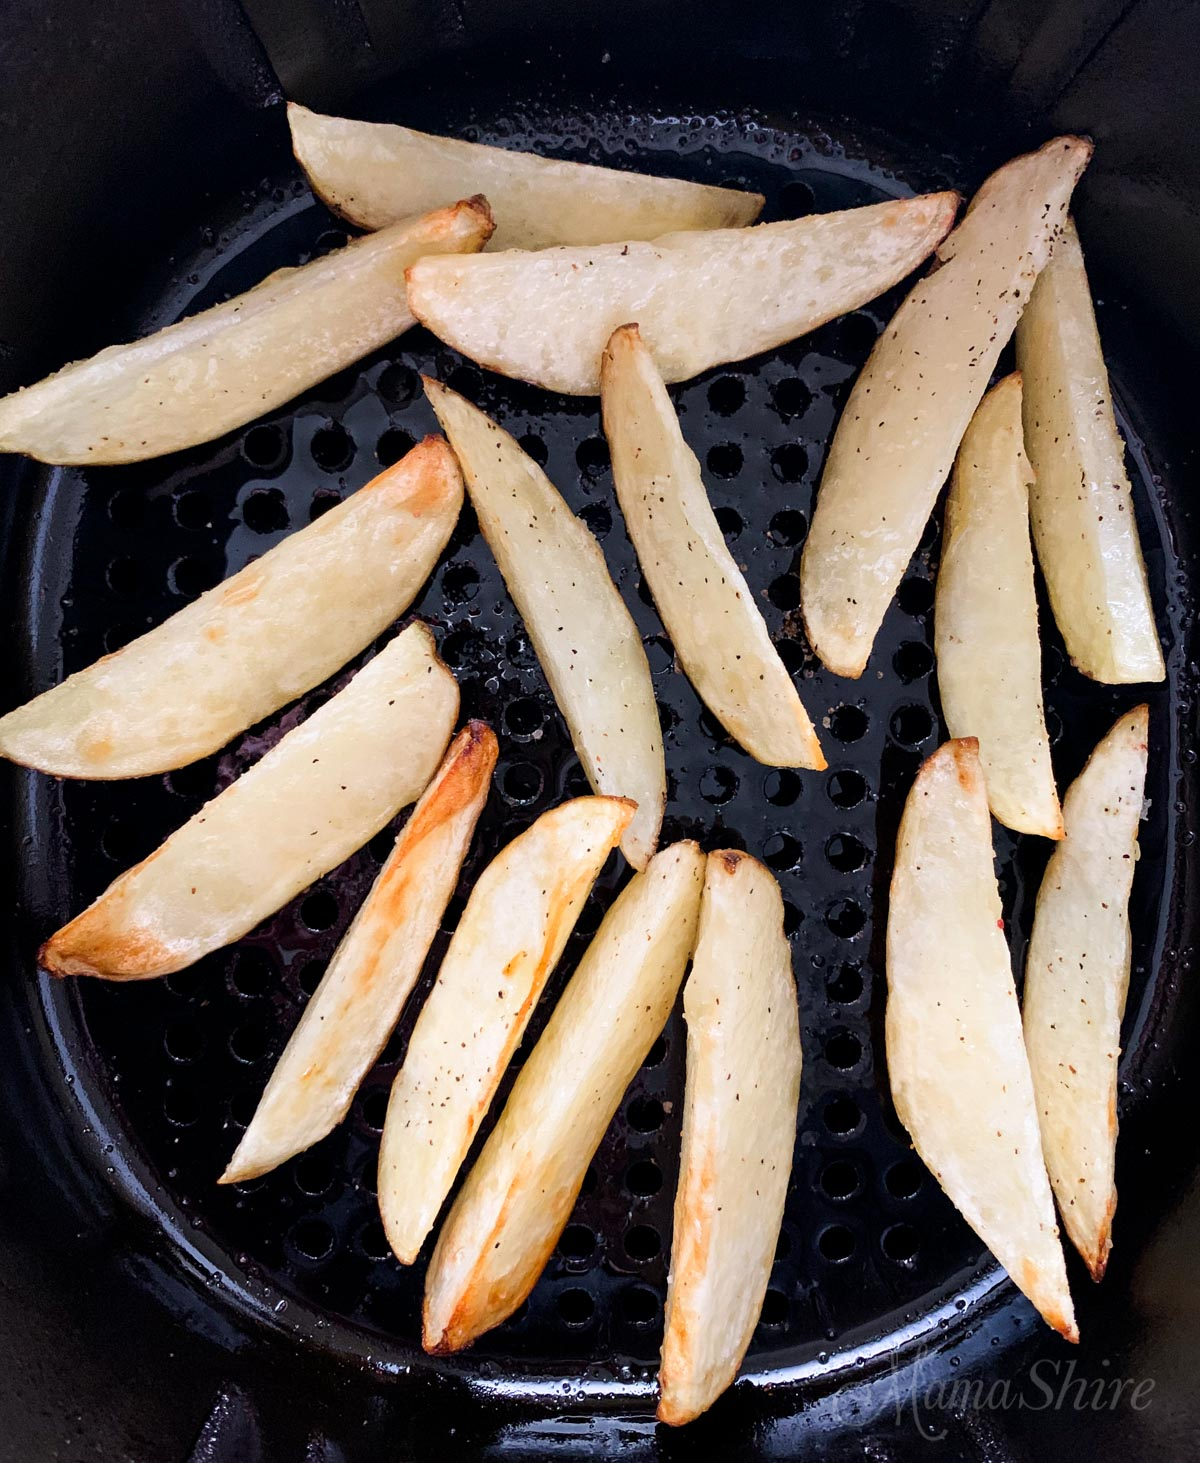 Potato wedges in the air fryer halfway cooked.